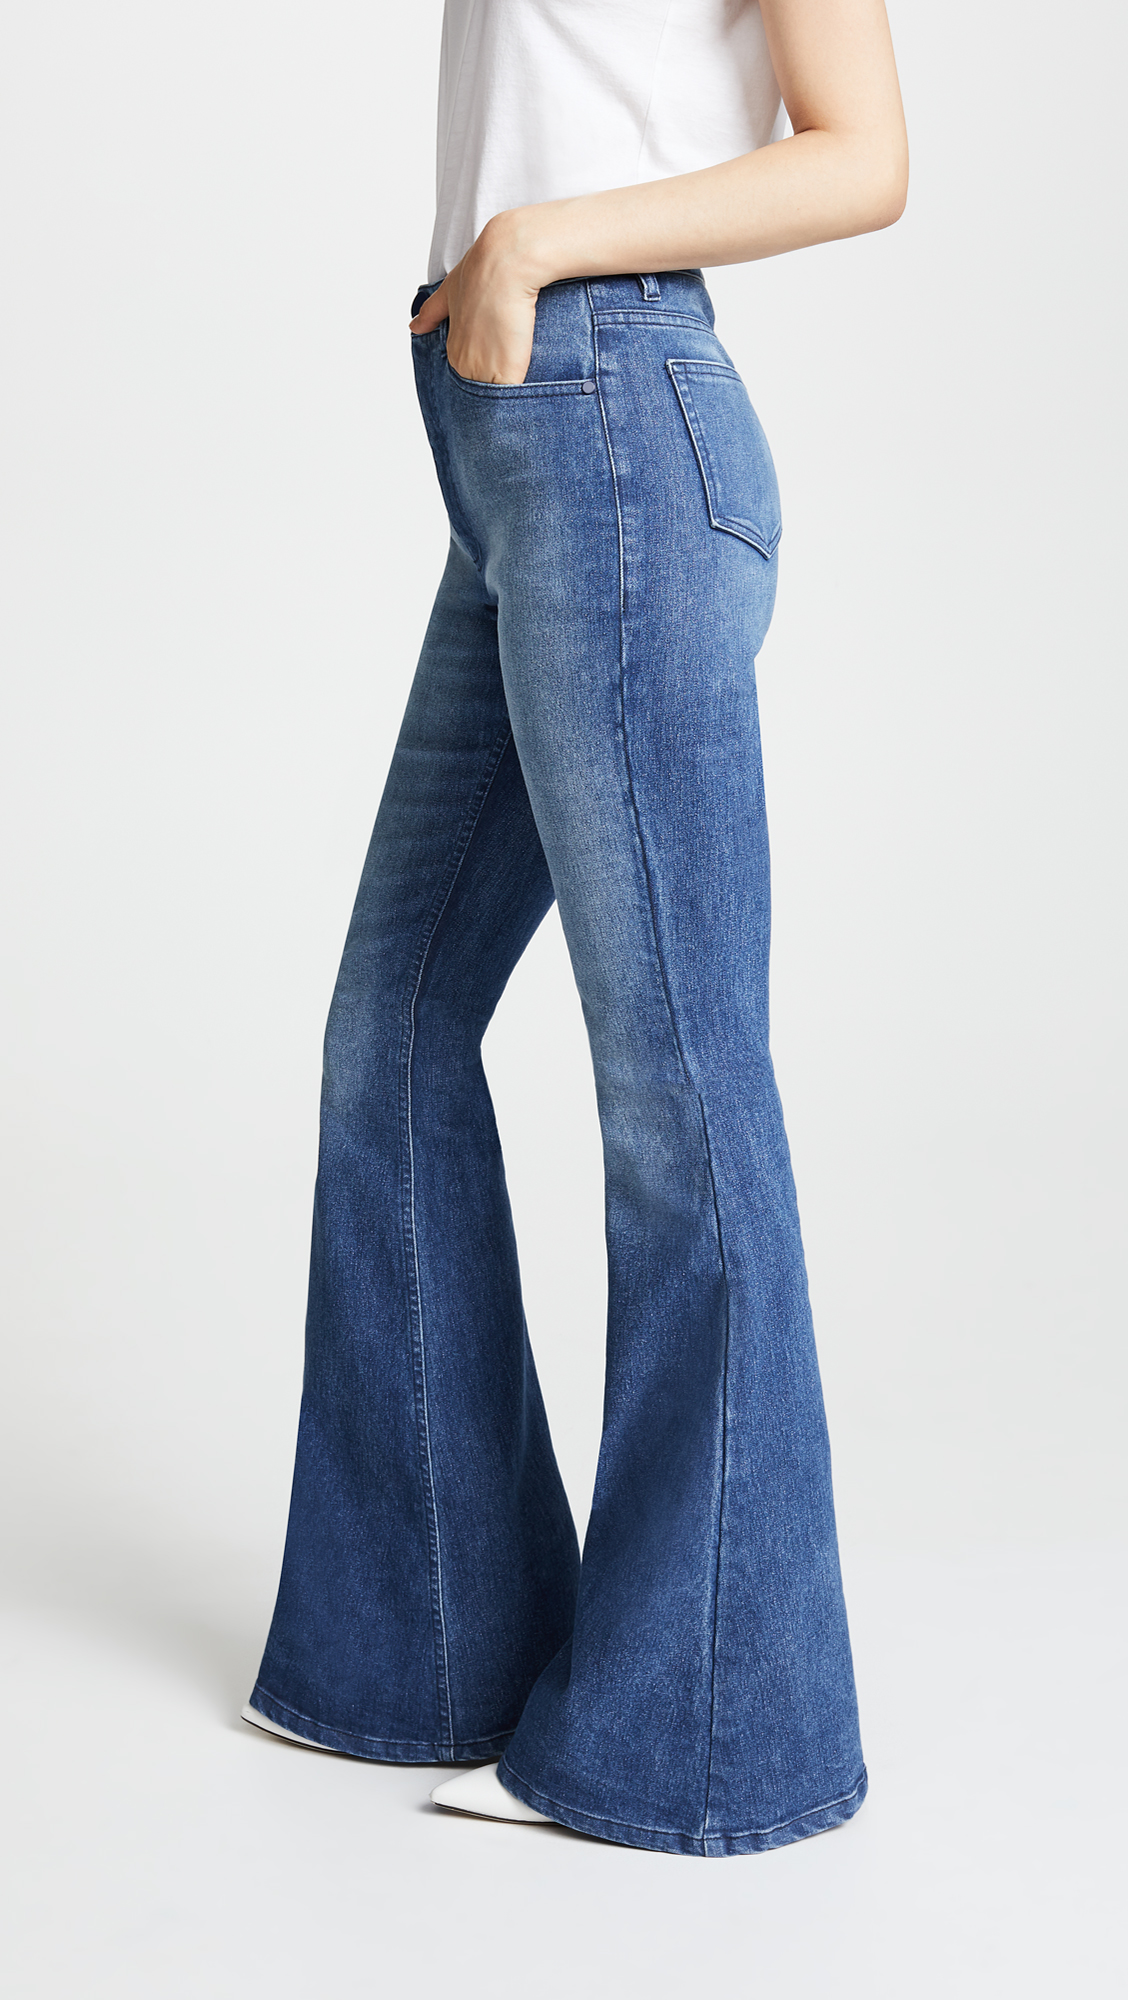 high waist flare jeans - side view